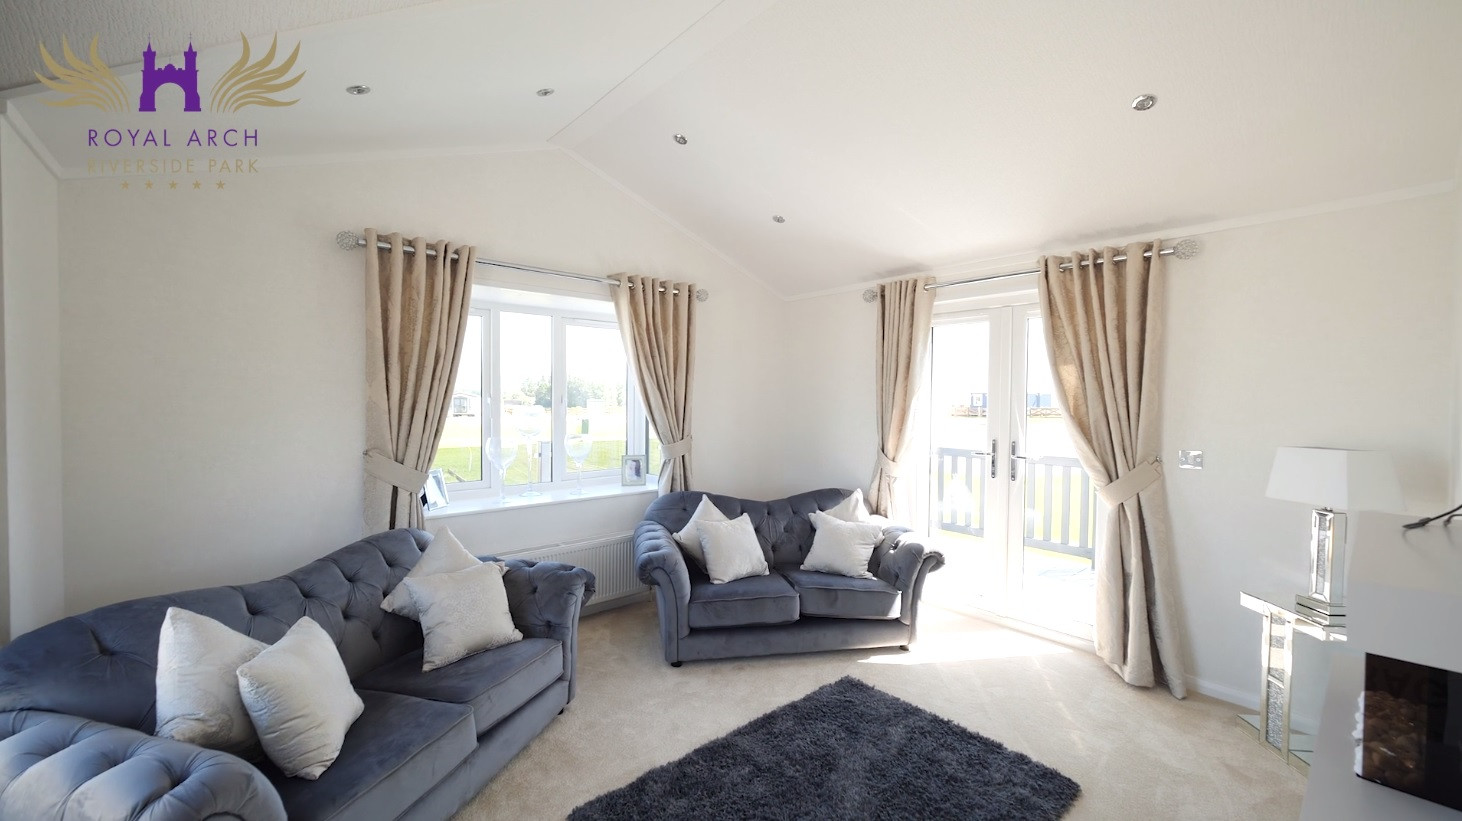 Mayfair lodge investment property royal arch riverside holiday park